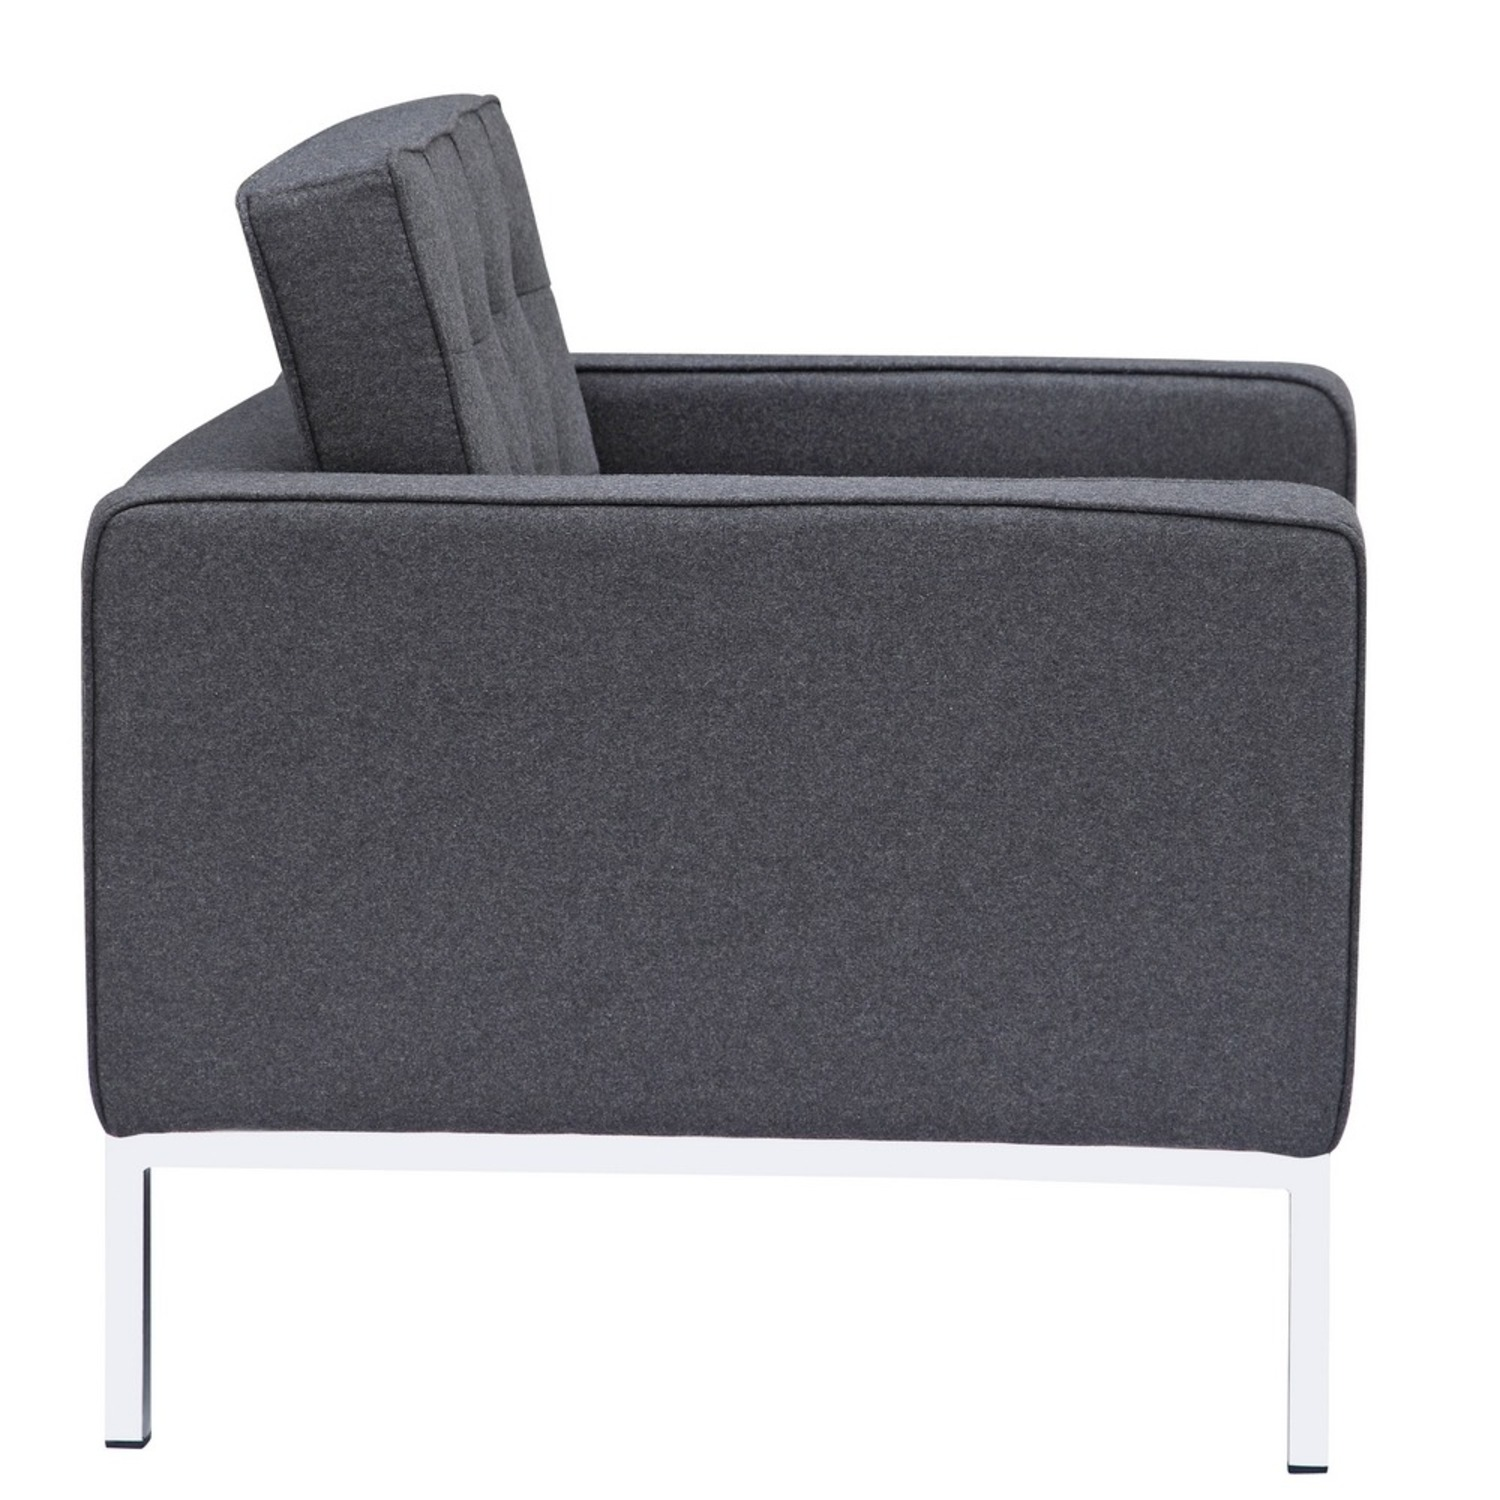 Contemporary Chair In Gray Wool Fabric - image-1